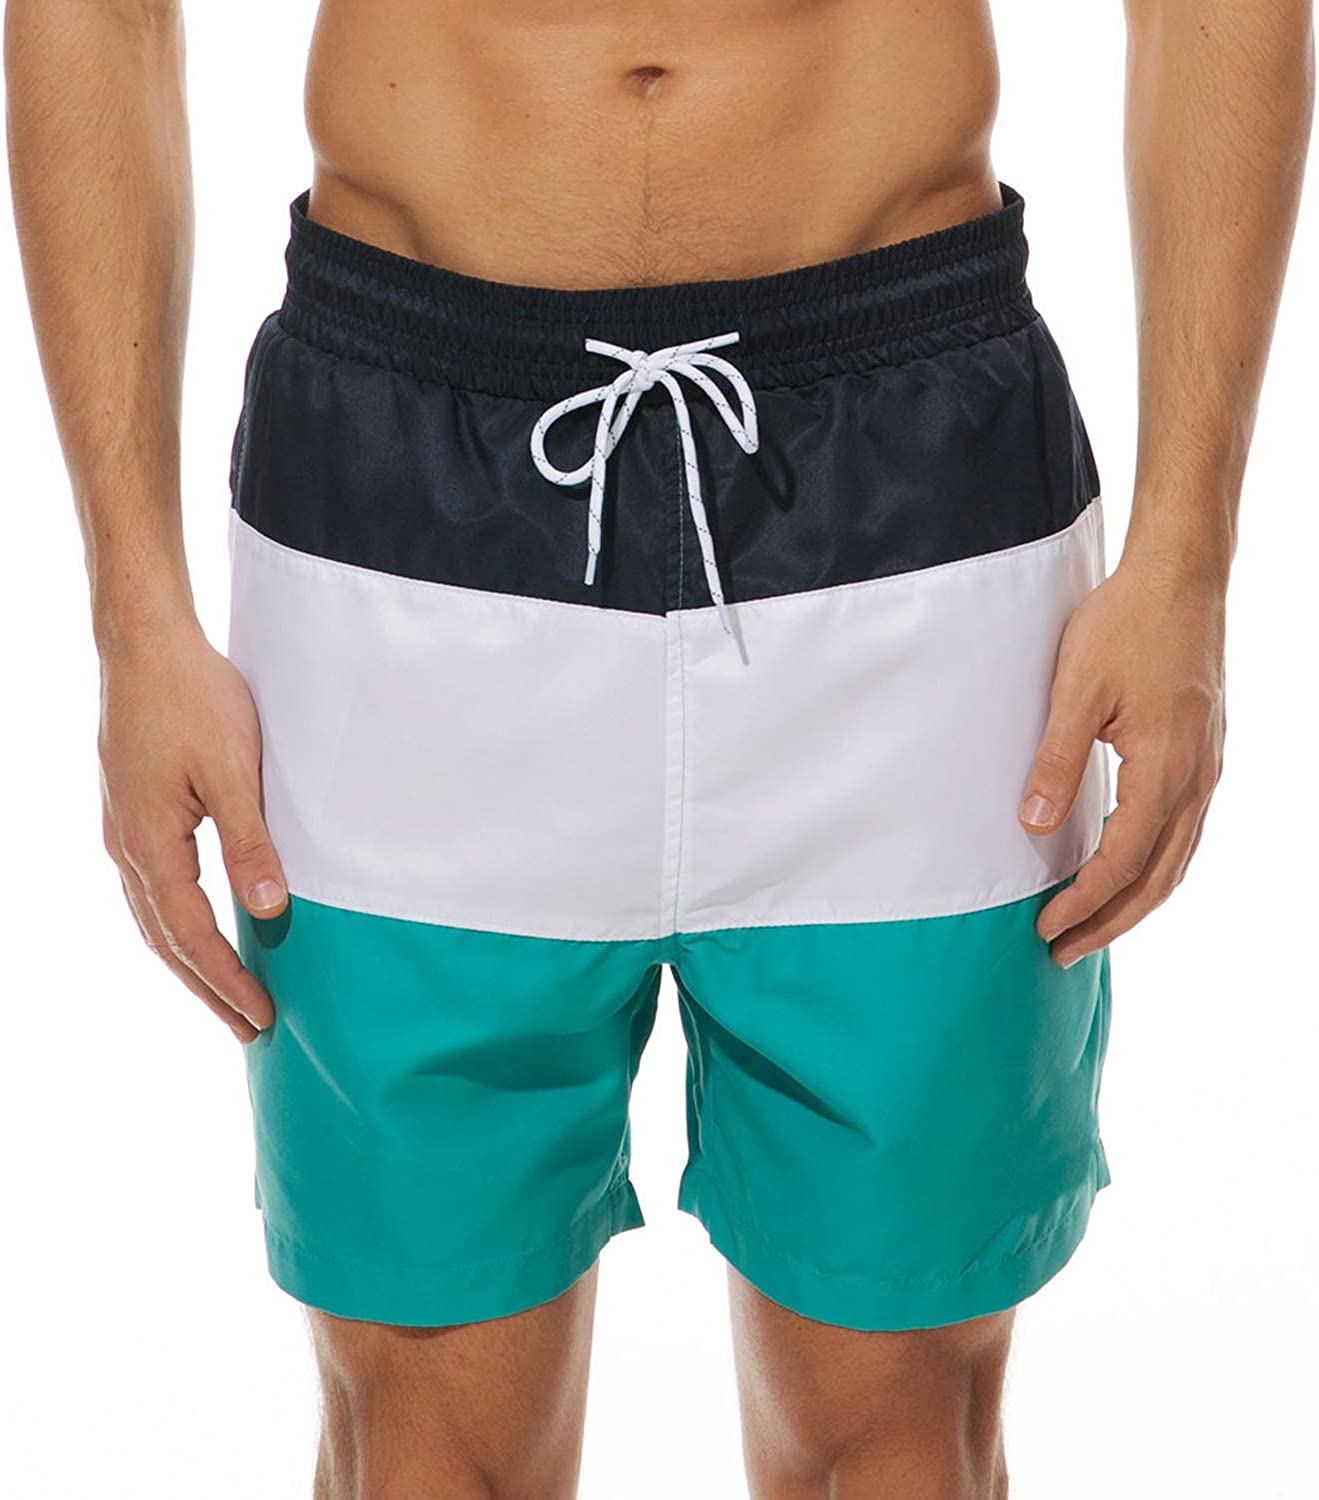 Mens Swim Trunks Fashion Swimming Shorts Beach Surfing Board Shorts Male Mens Bathing Suits